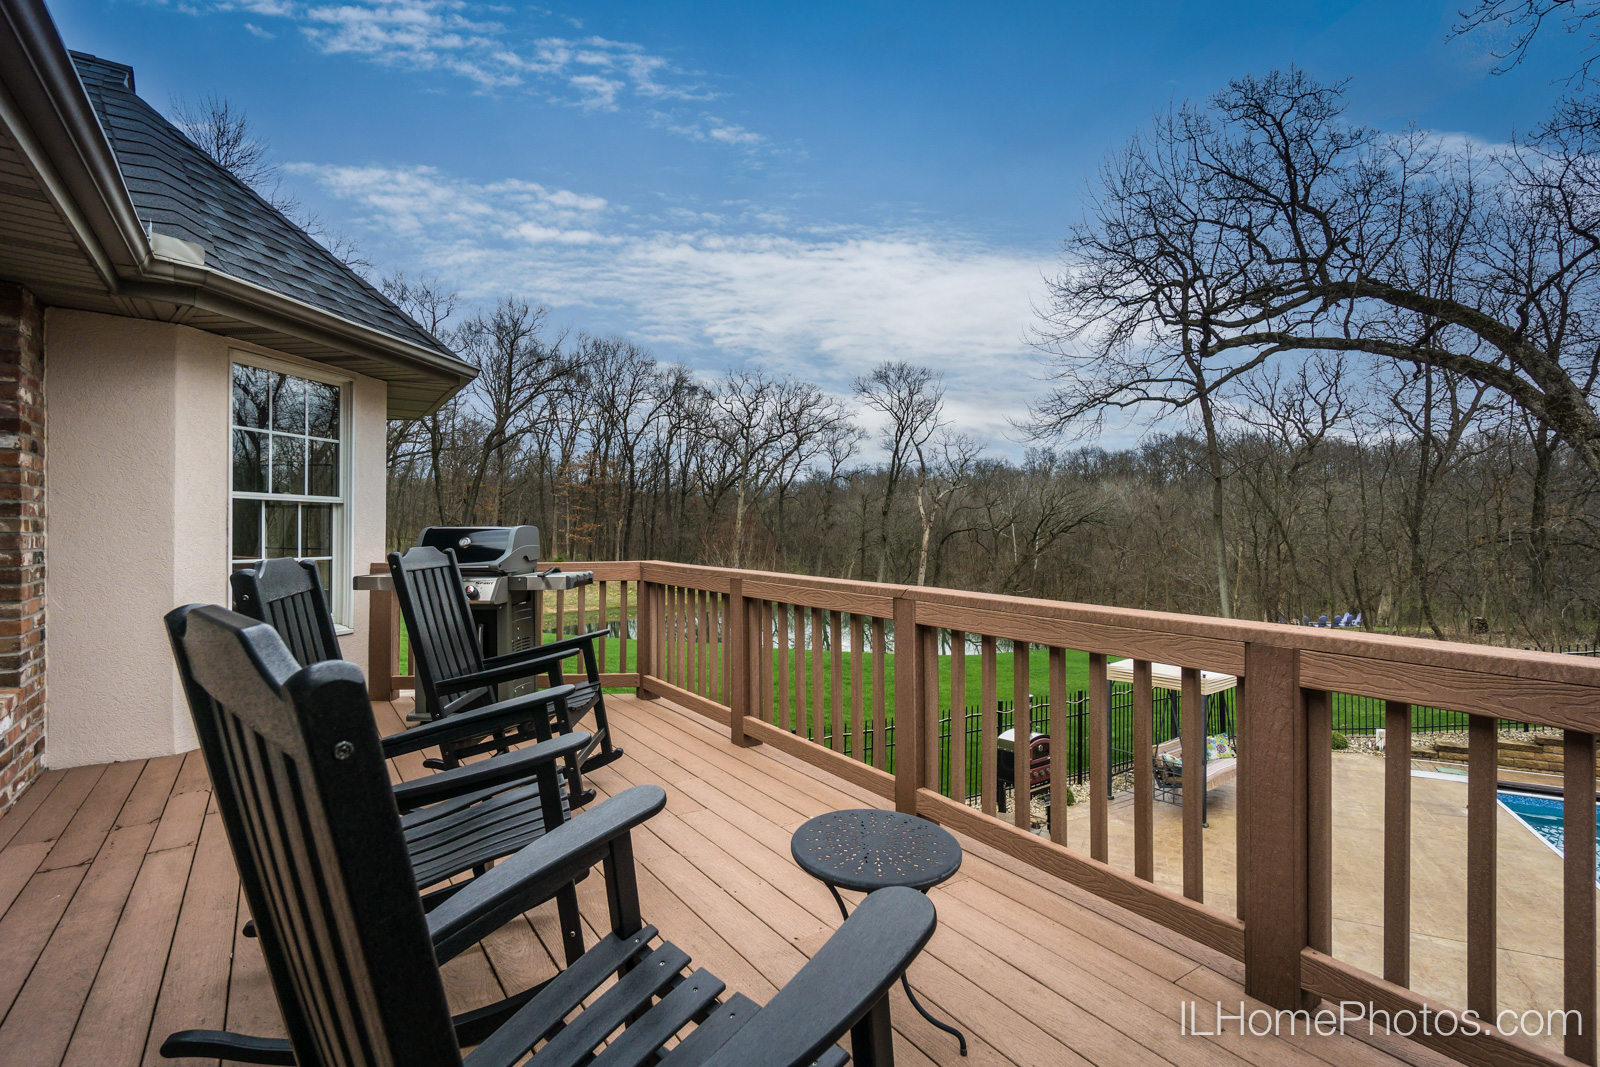 Exterior back deck photograph for real estate :: Illinois Home Photography by Michael Gowin, Lincoln, IL